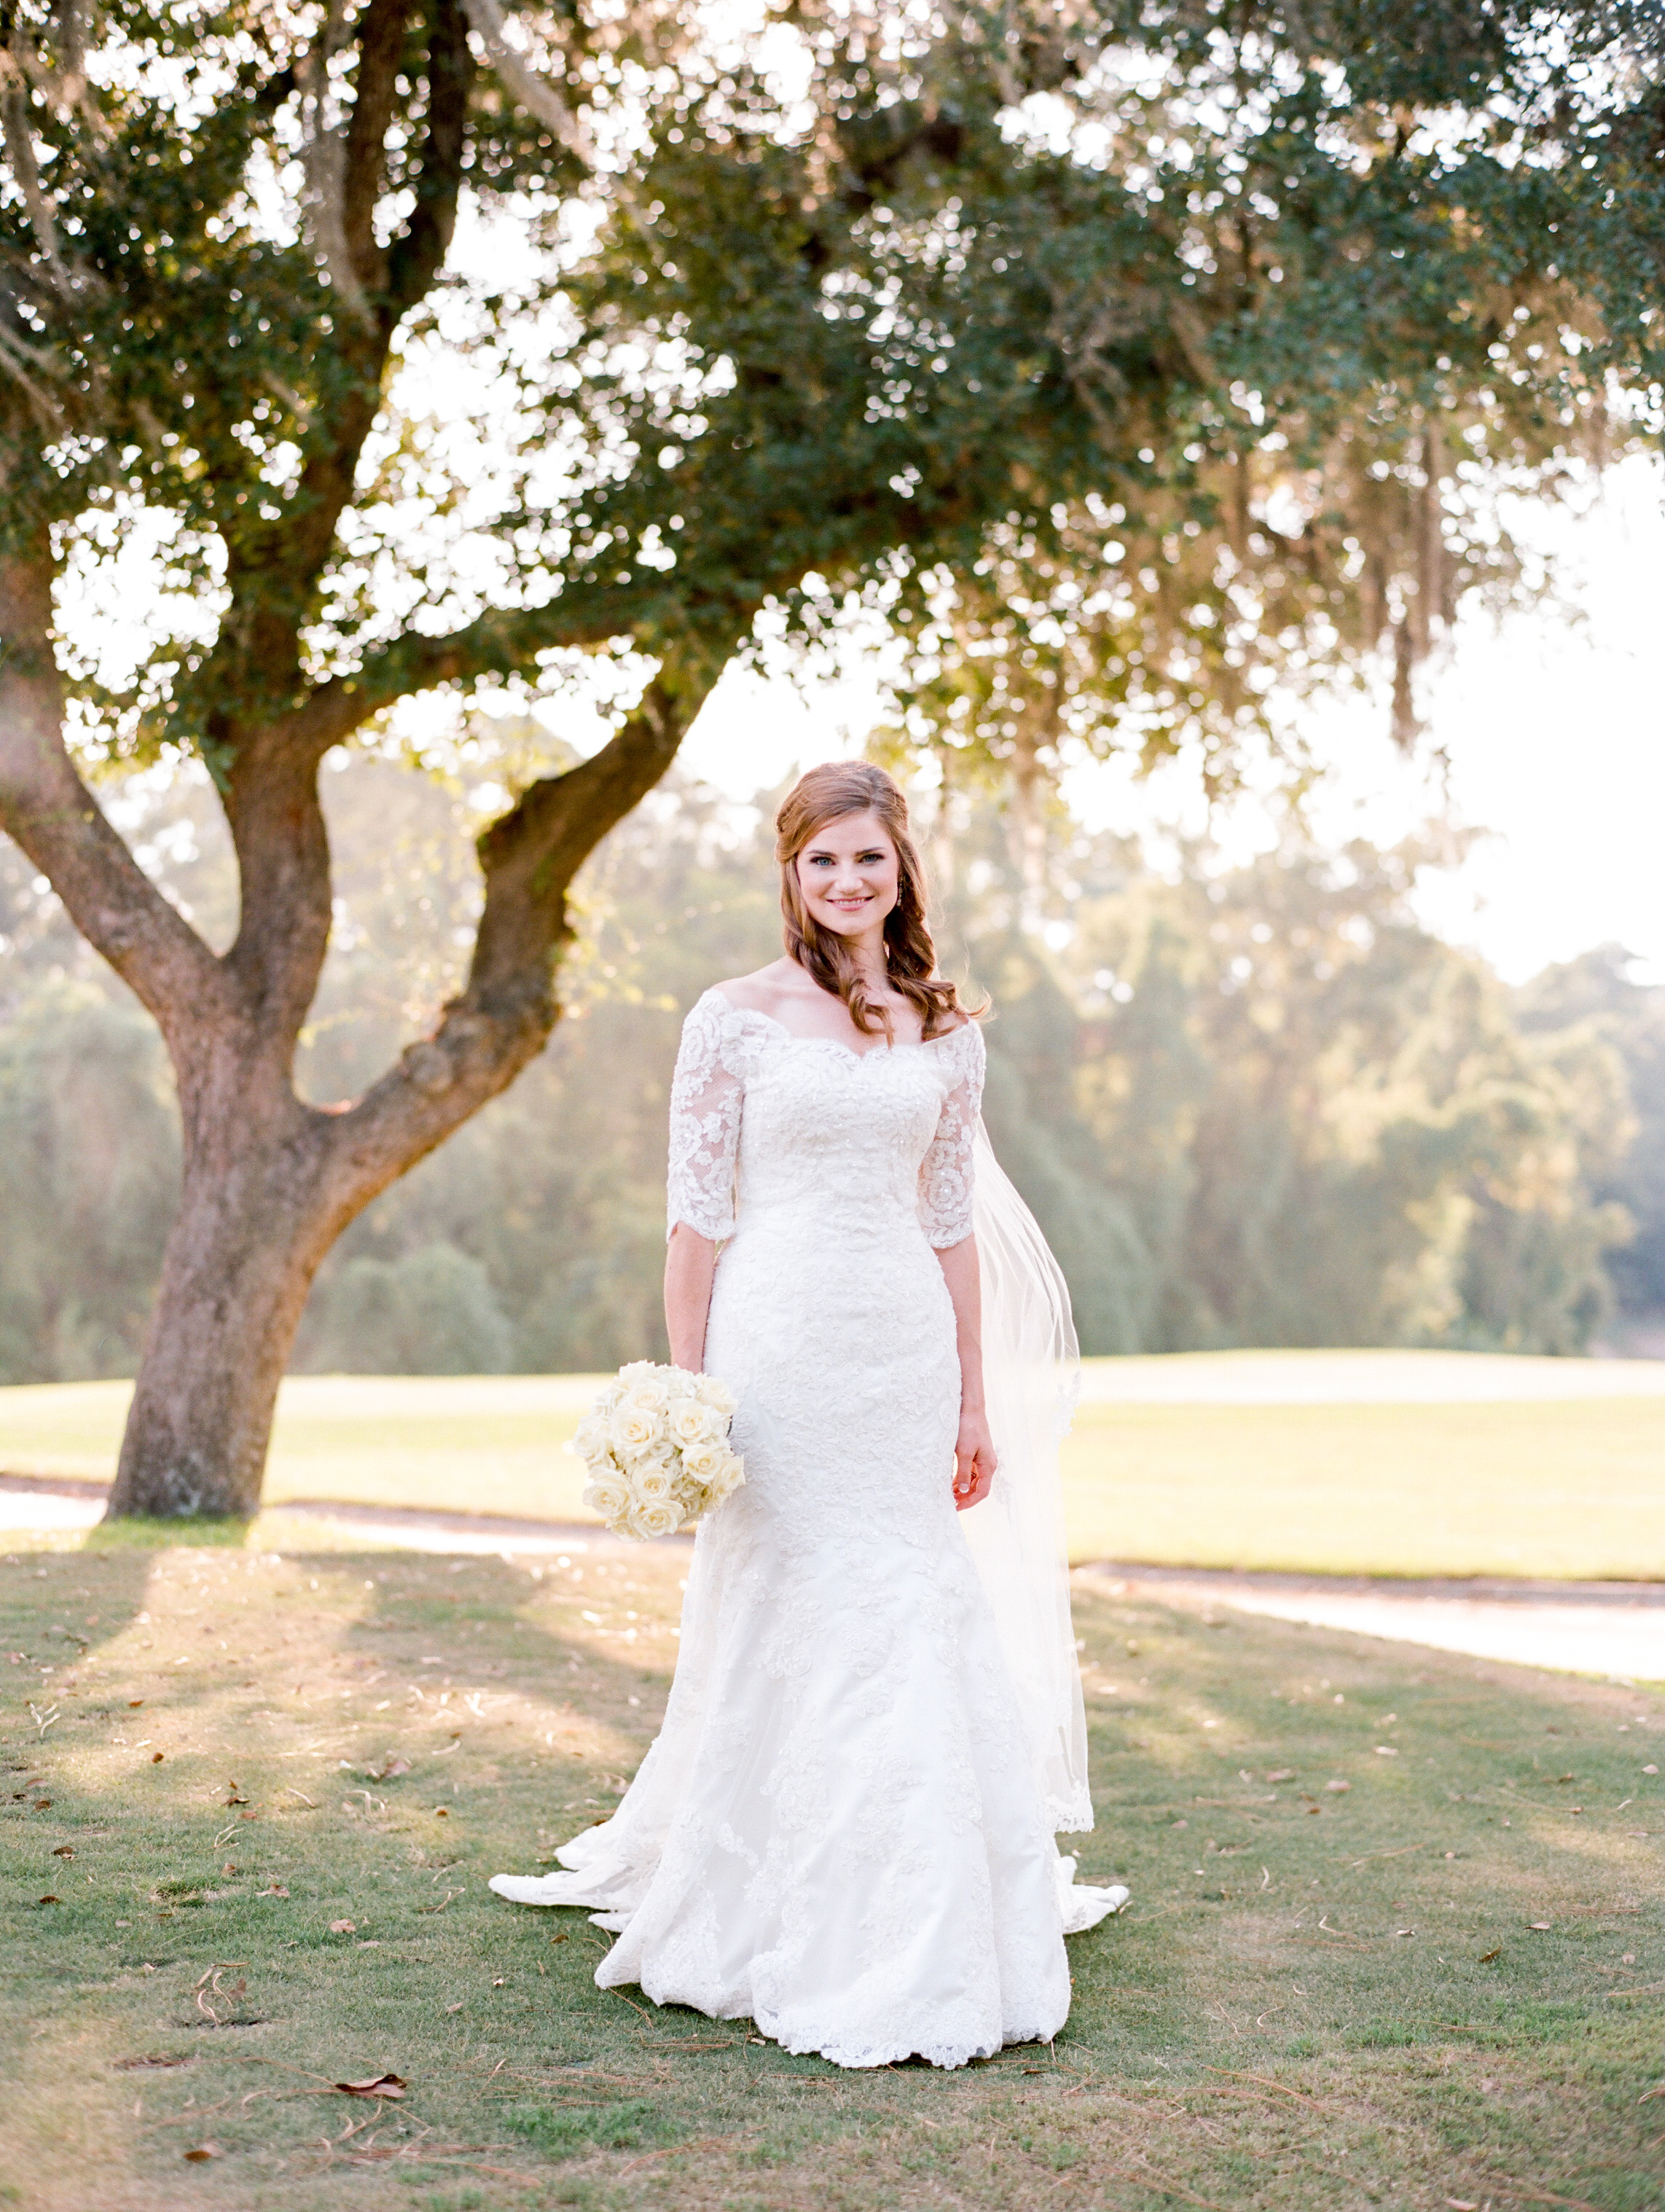 Dana-Fernandez-Photography-Film-Wedding-Photography-Houston-Bridals-Houston-Country-Club-Photographer-2.jpg